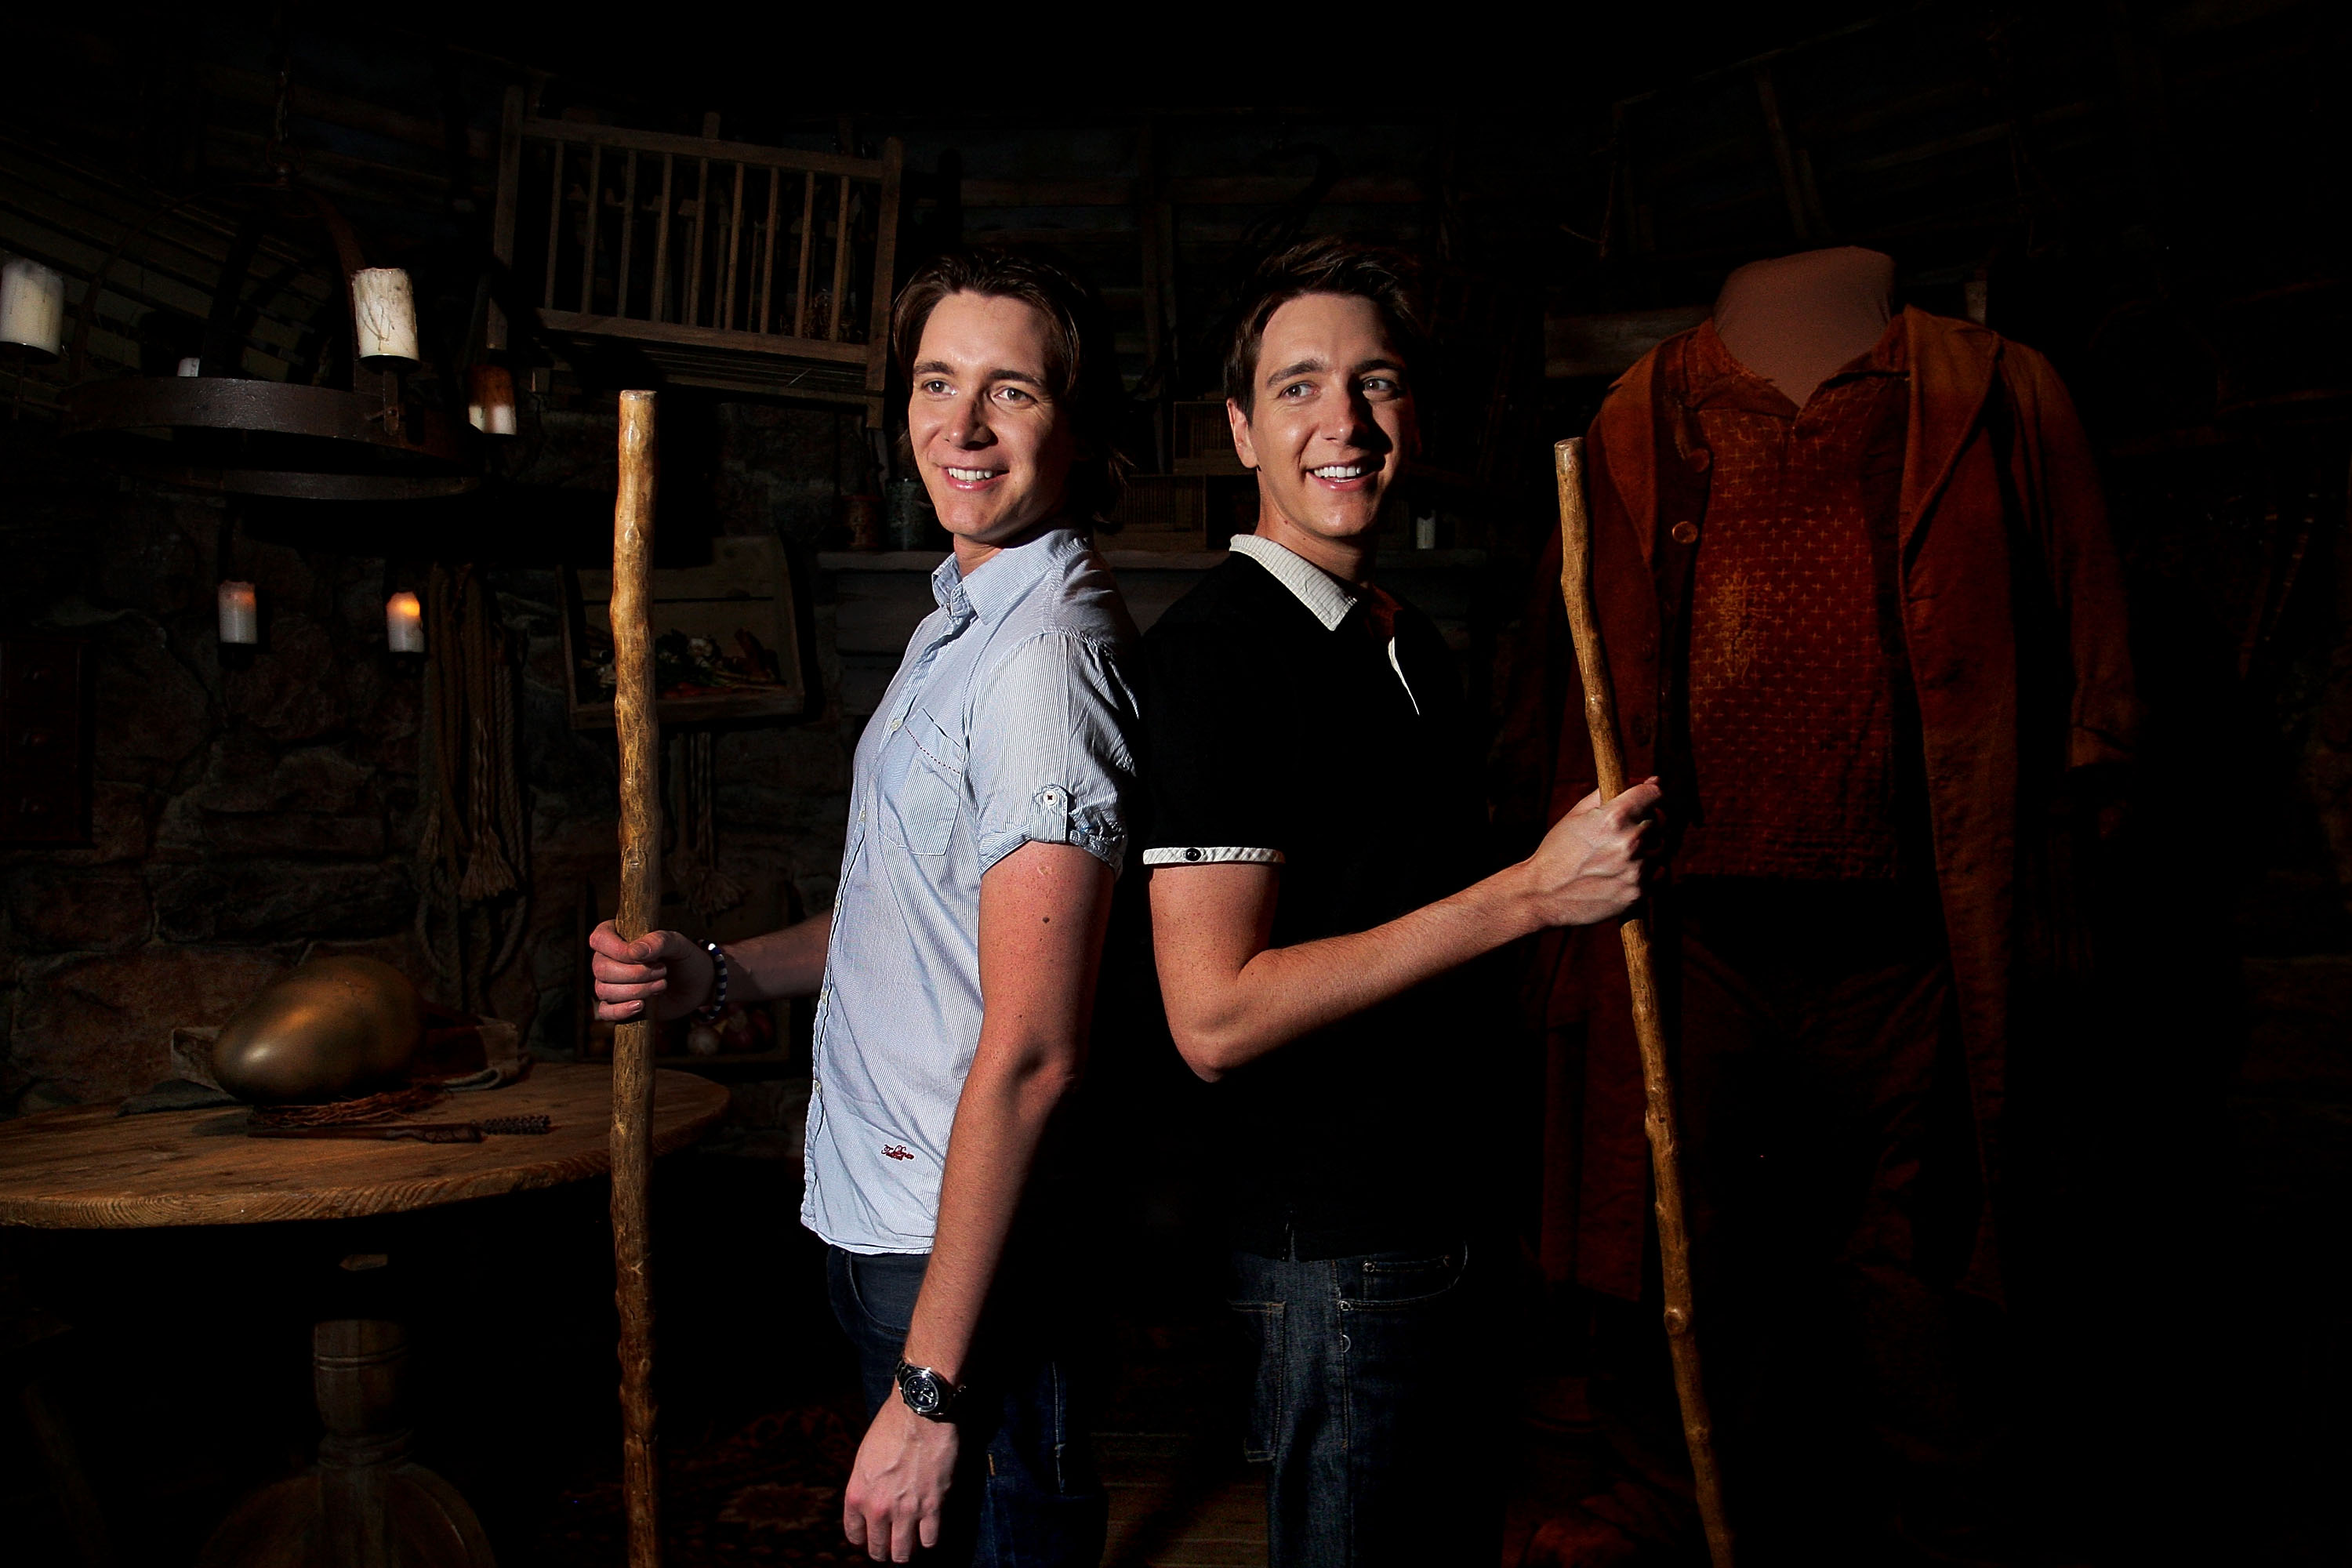 James and Oliver Phelps